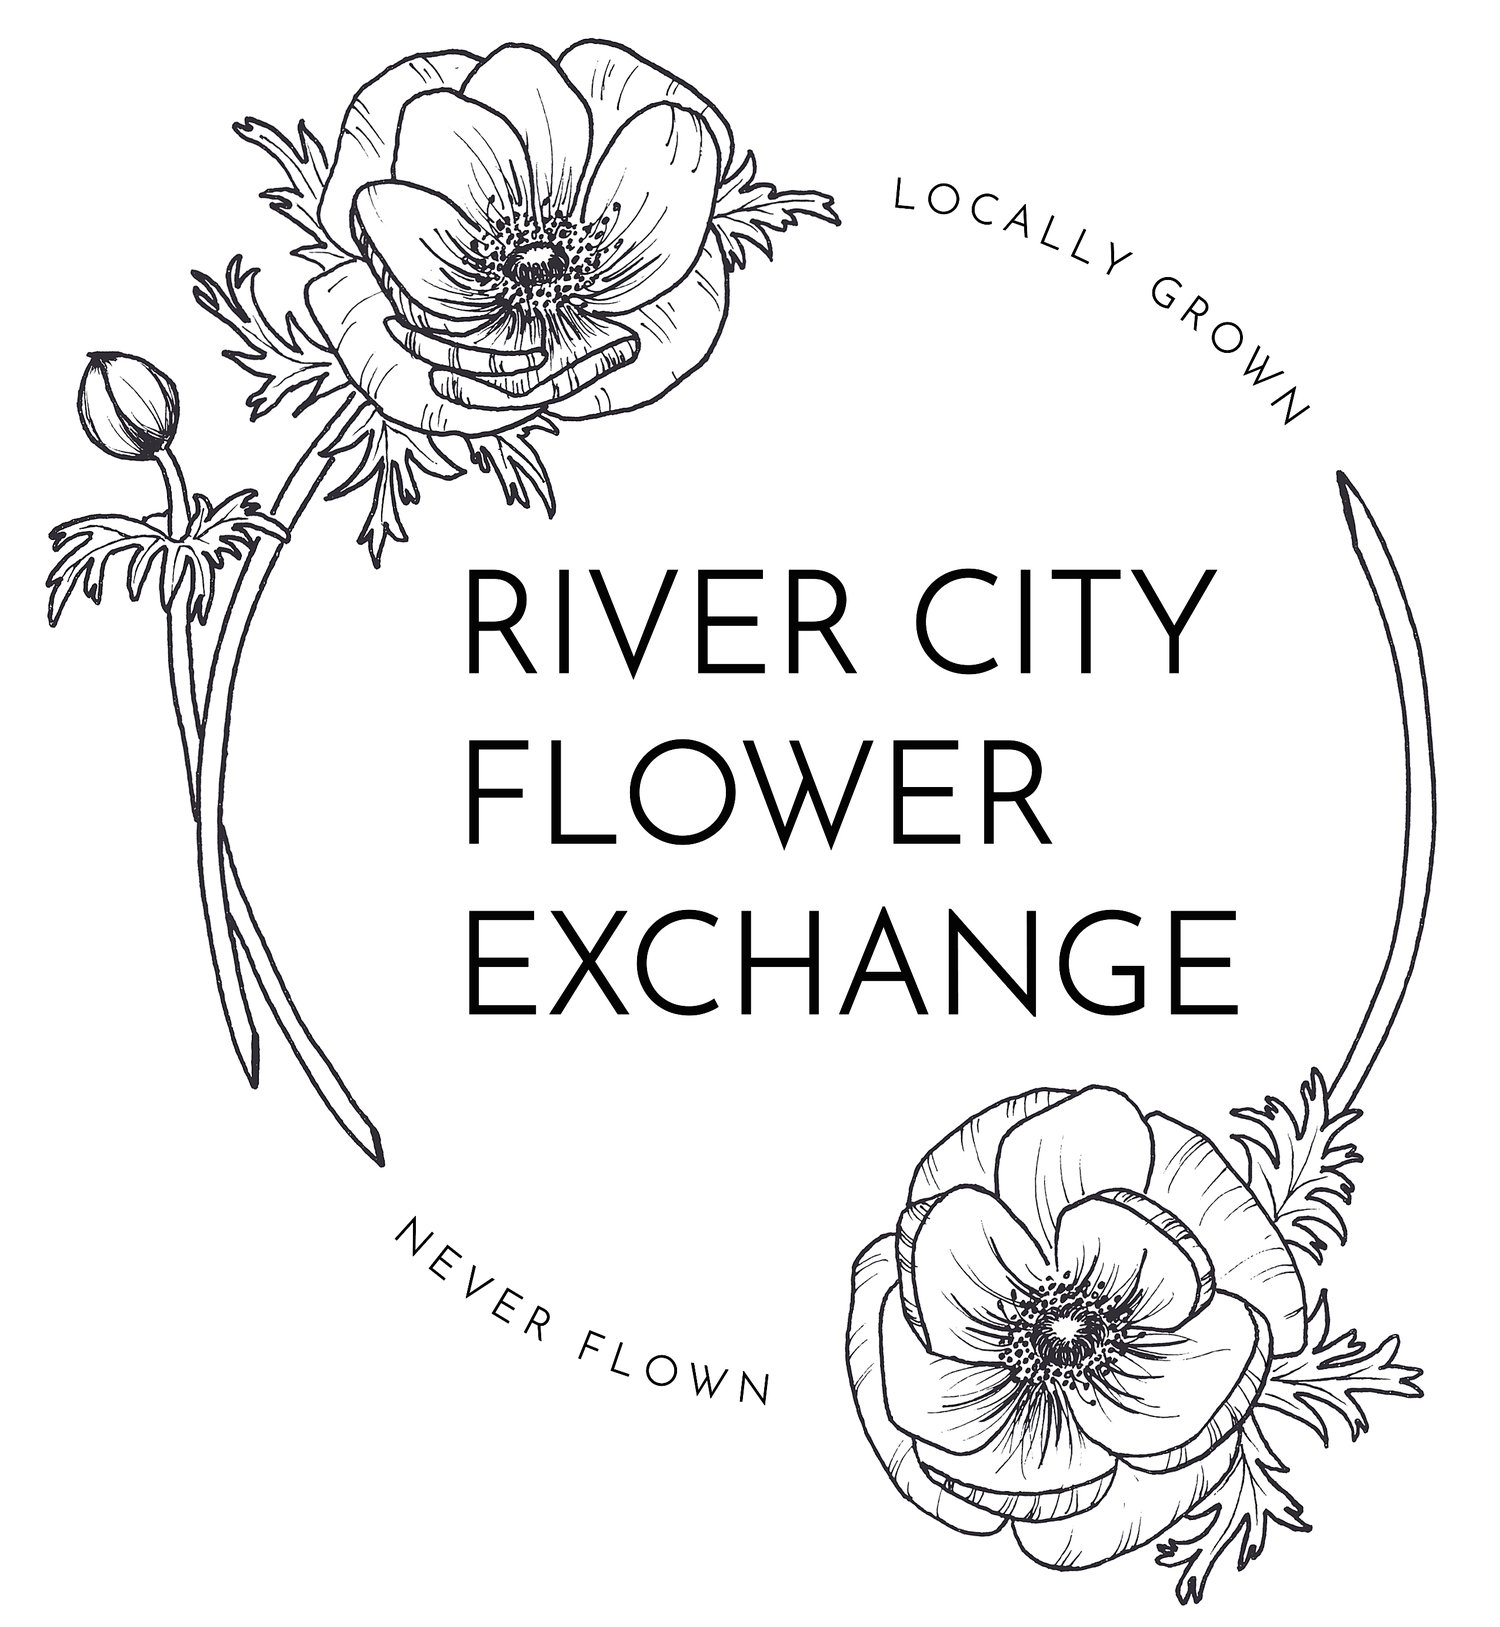 River City Flower Exchange